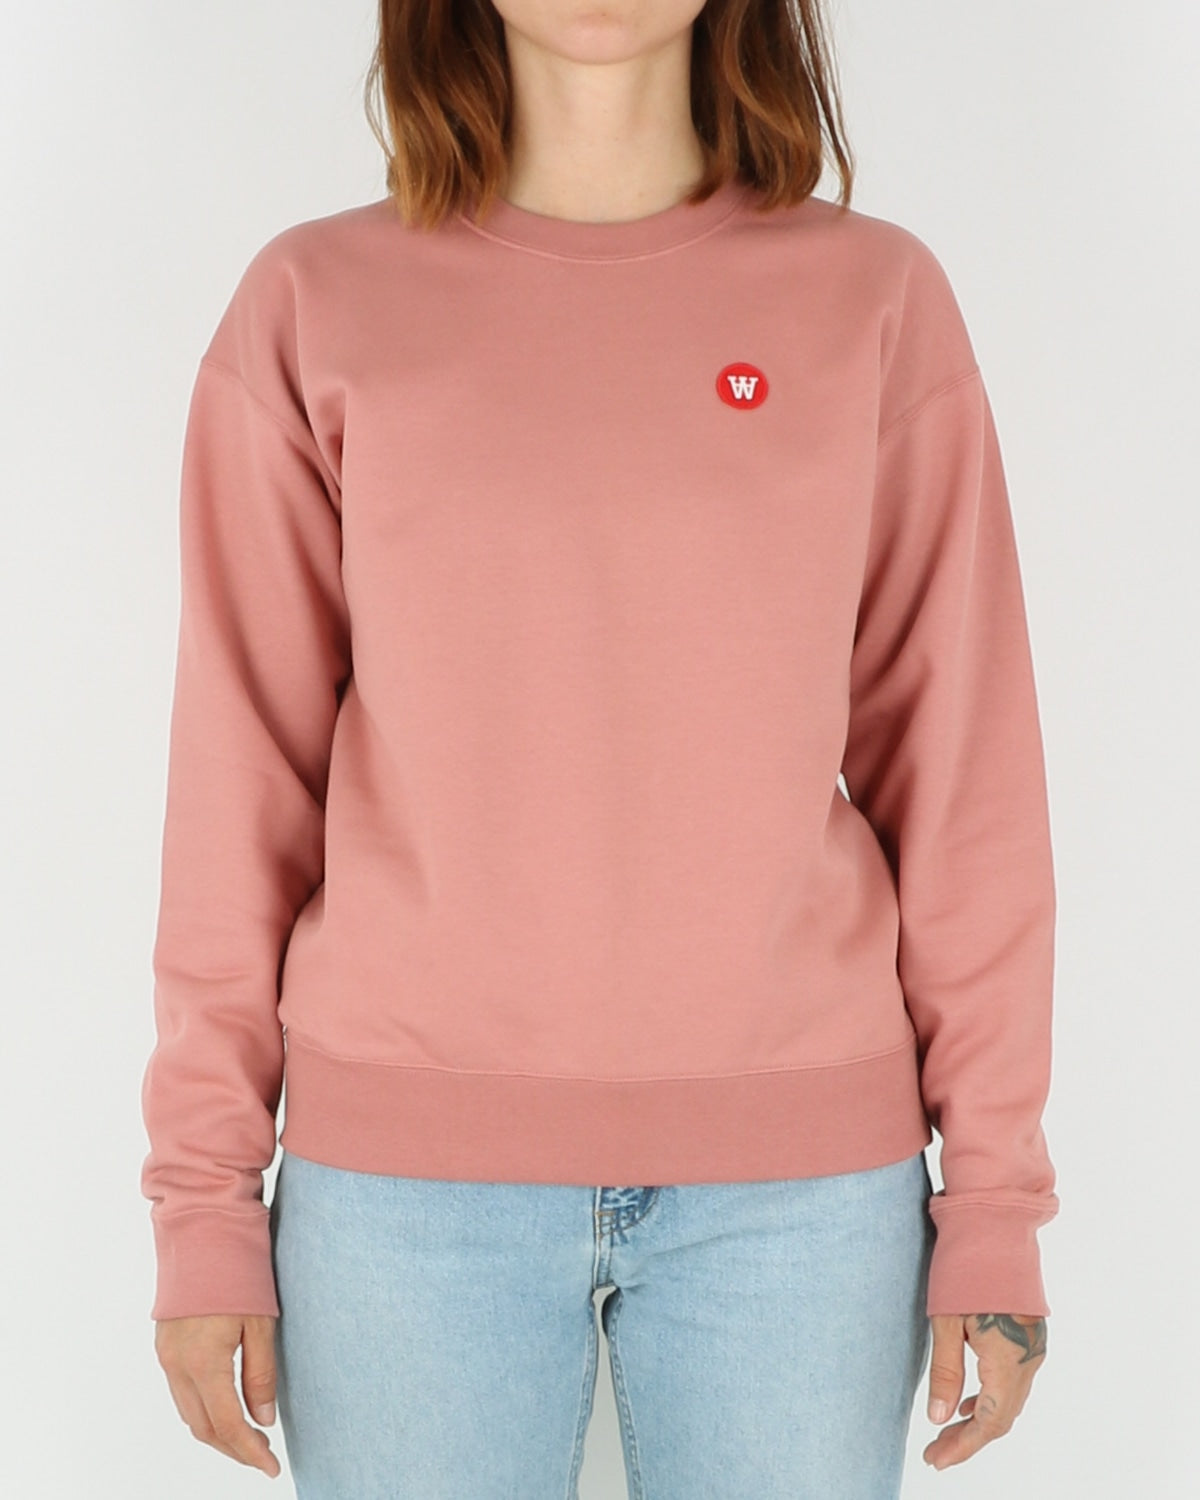 wood wood_jess sweatshirt_dark rose_view_1_3